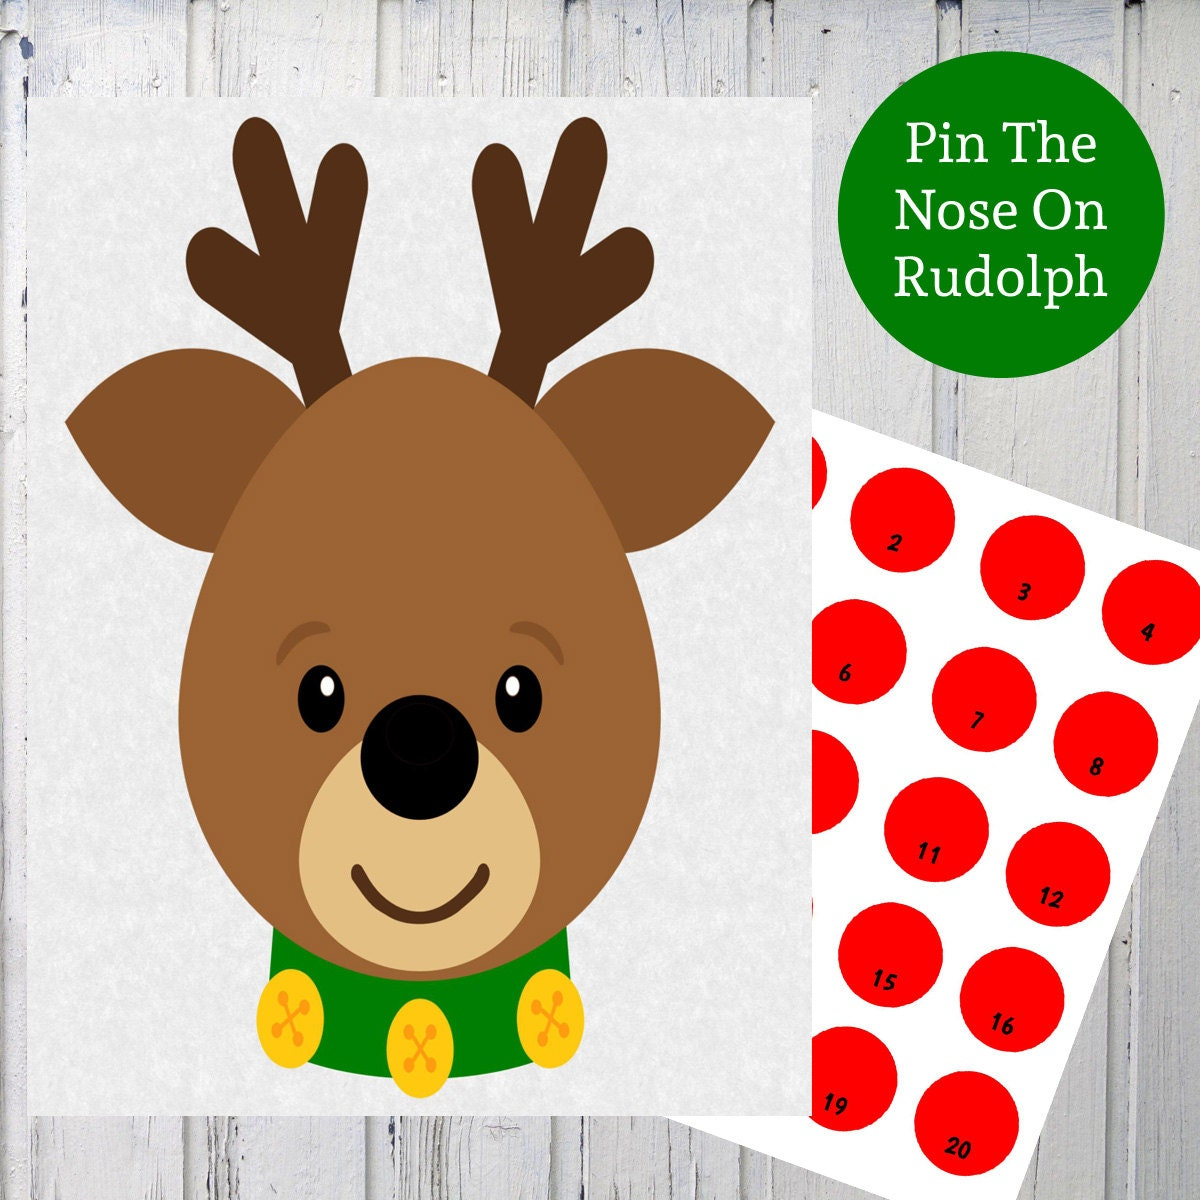 Pin The Nose On Rudolph Reindeer Christmas Printable Game - 1200x1200 ...